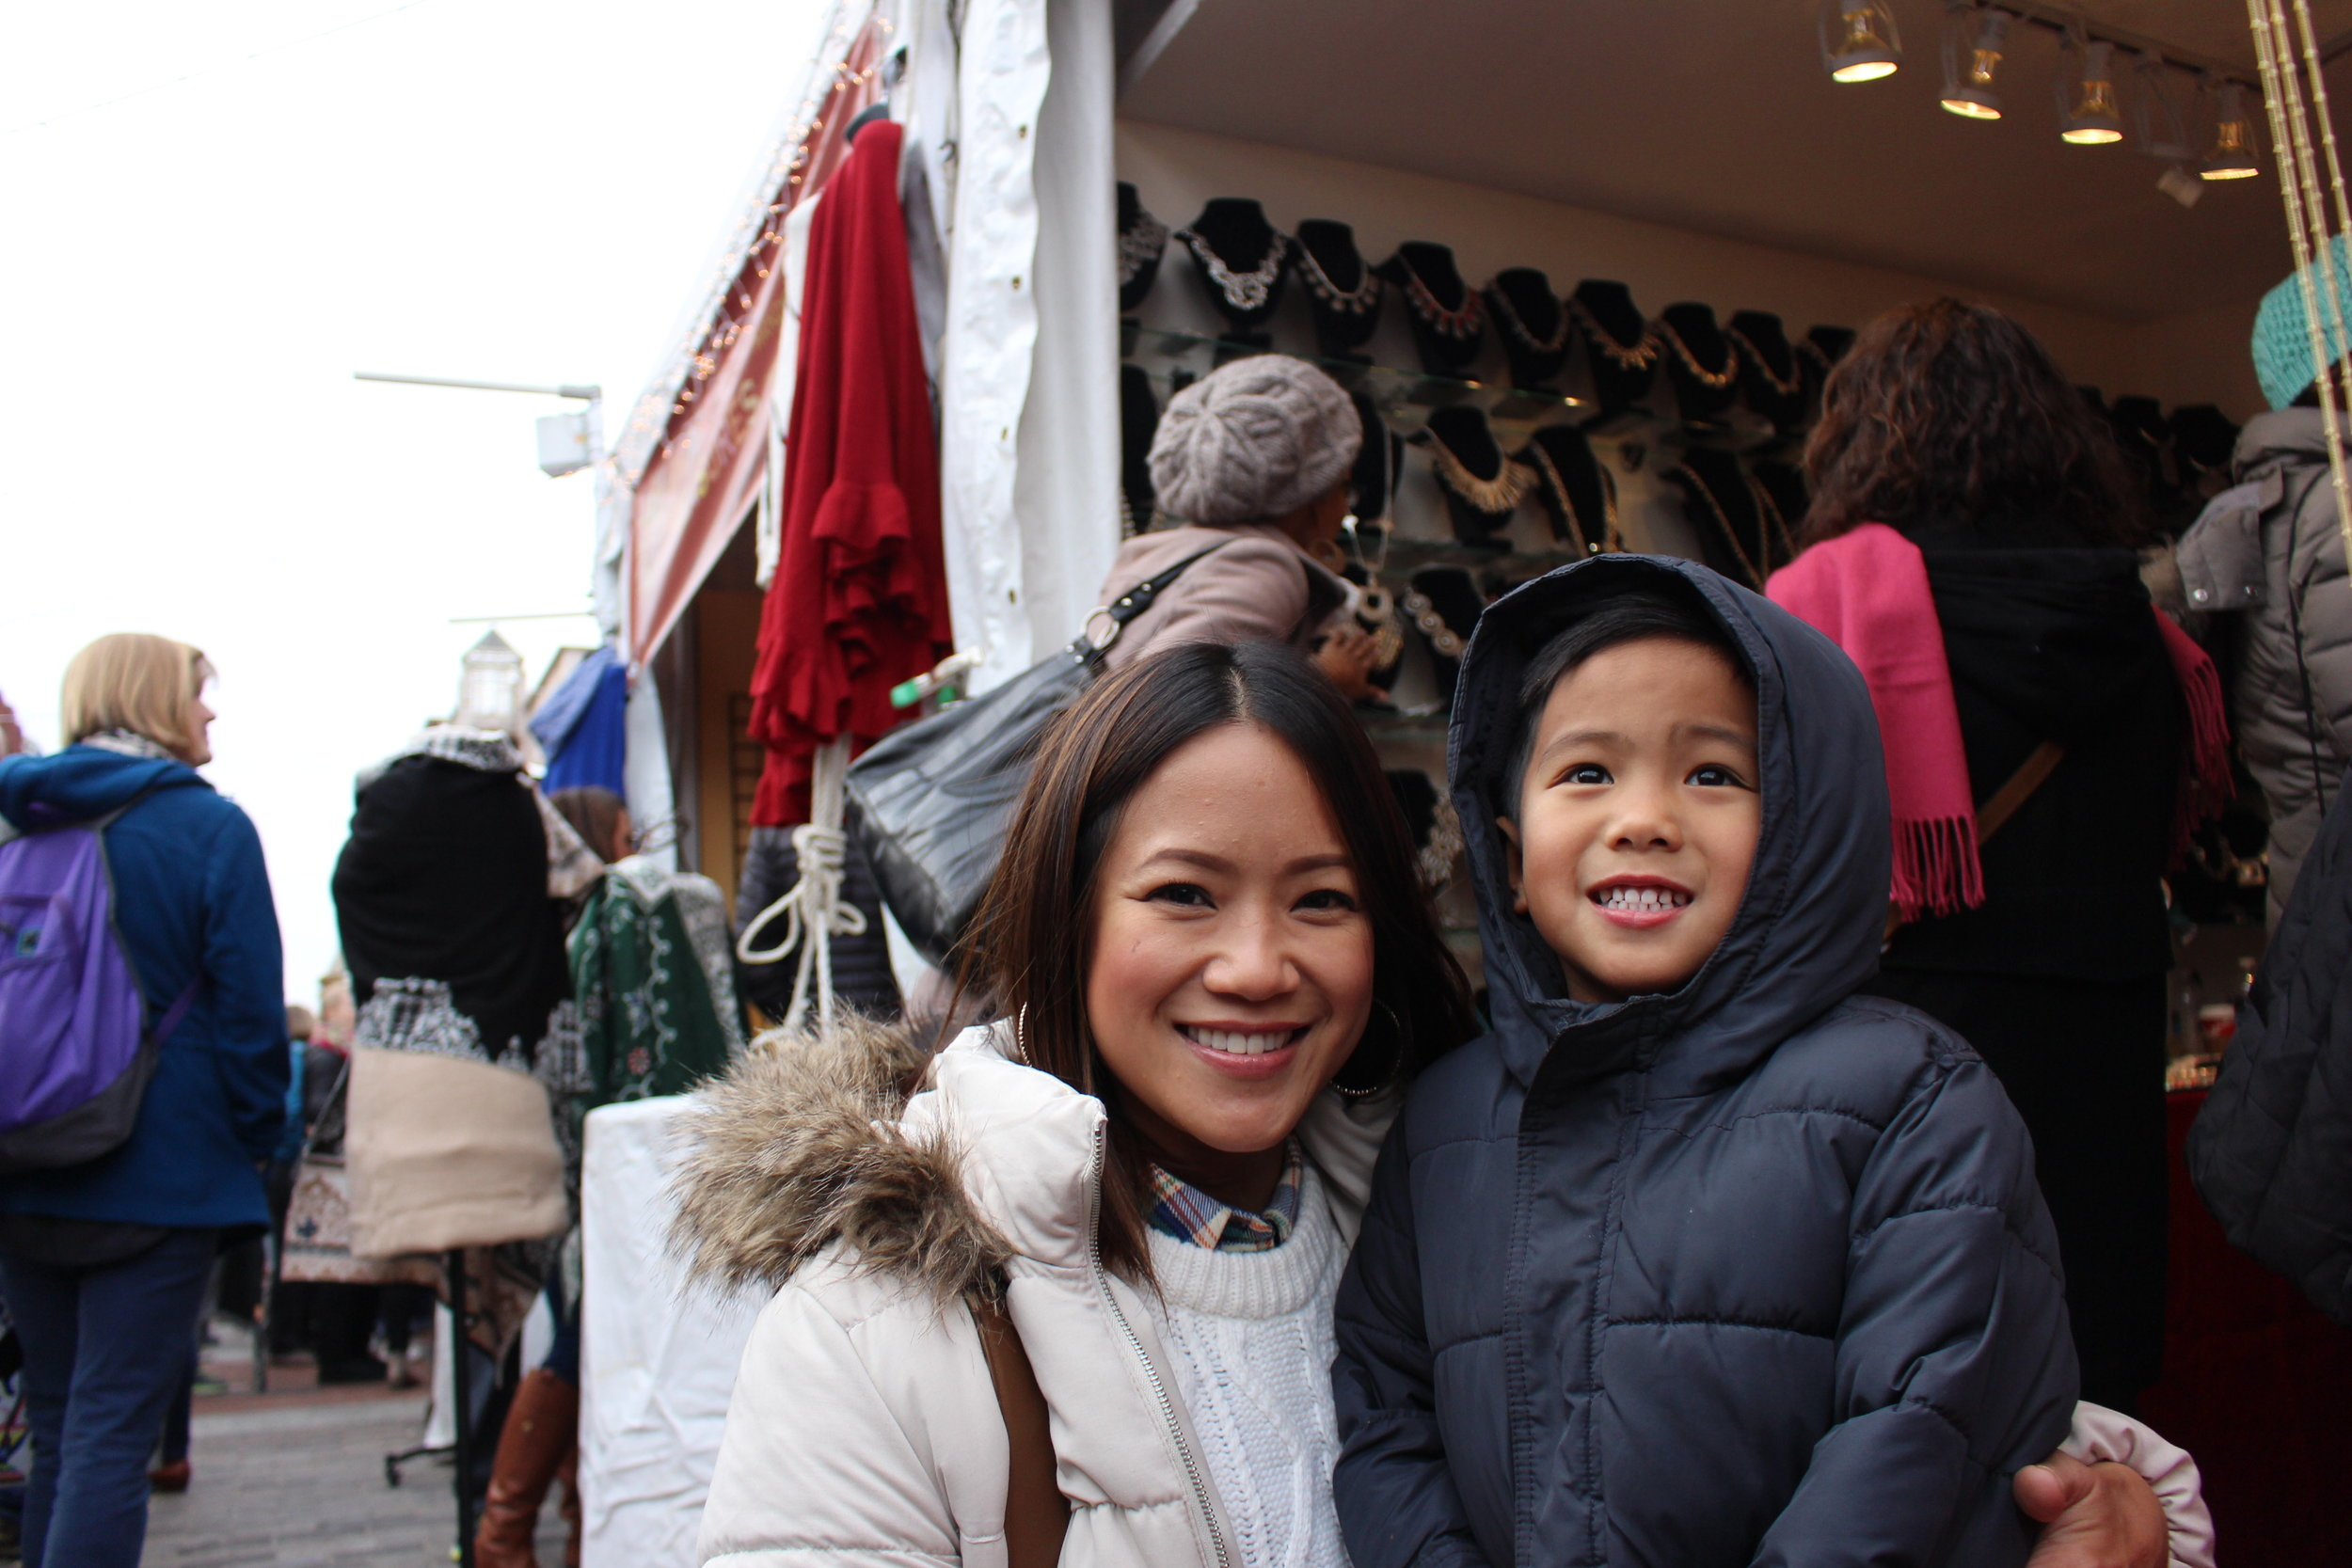 Denise Parco and her son Daniel pause for photo after wrapping it up at a jewelry booth. Photo by Natalie Hutchison.